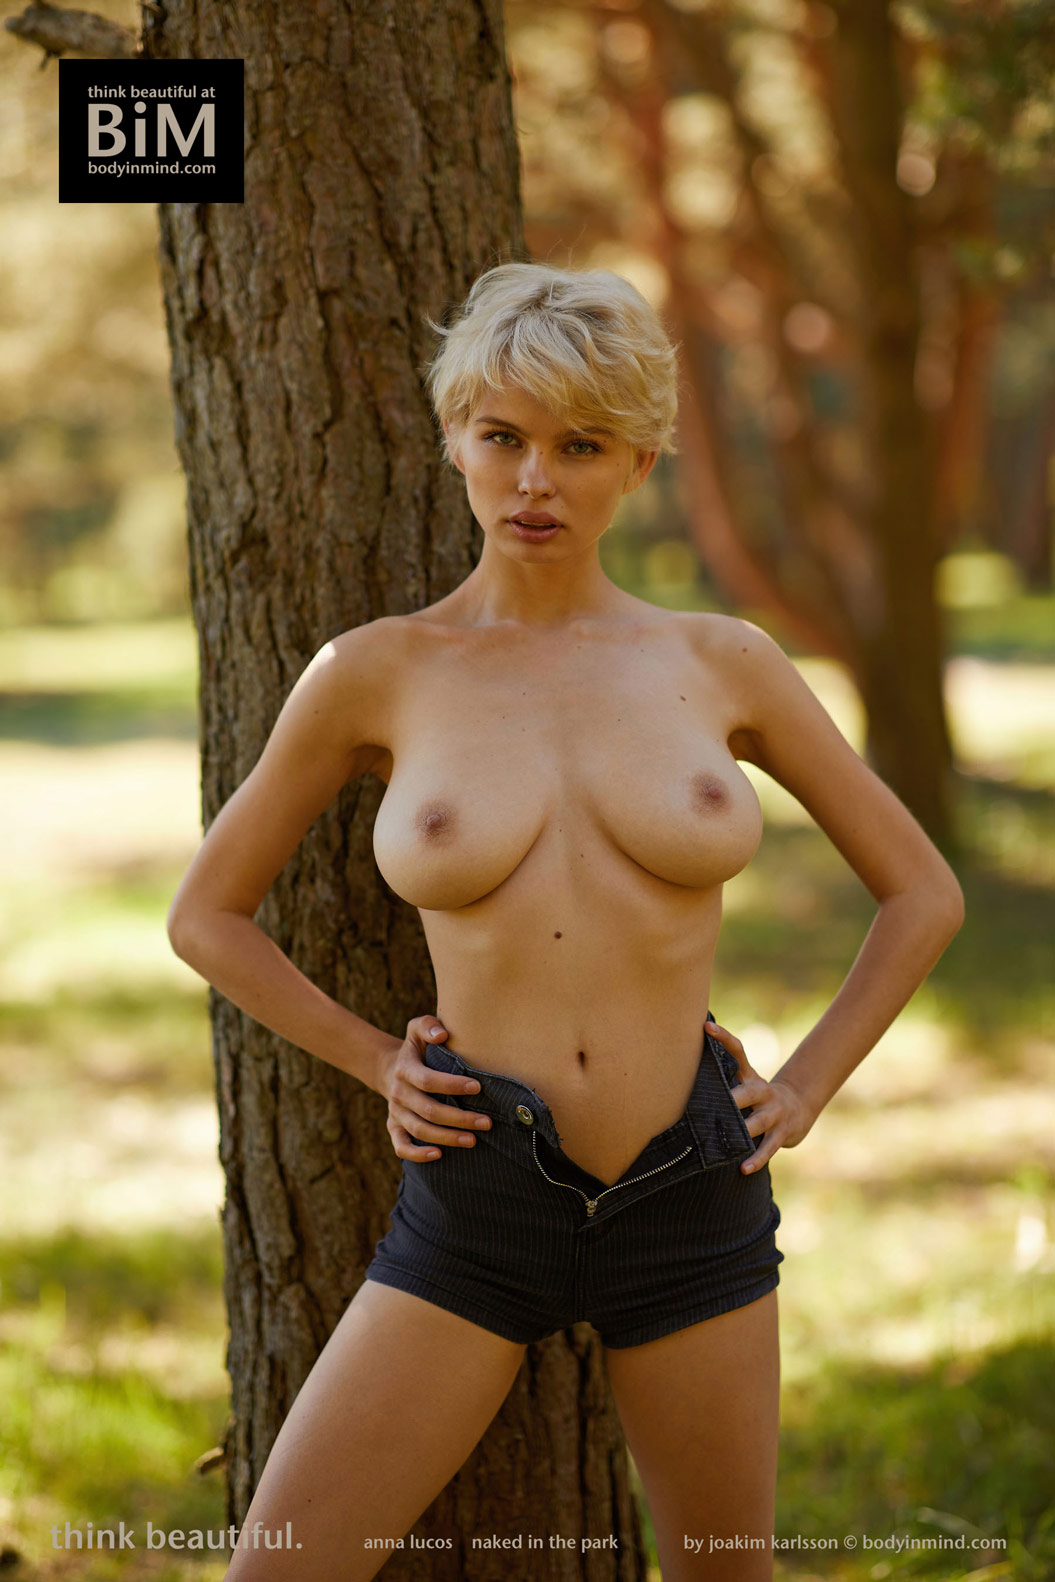 Anna Lucos Nude in the Park